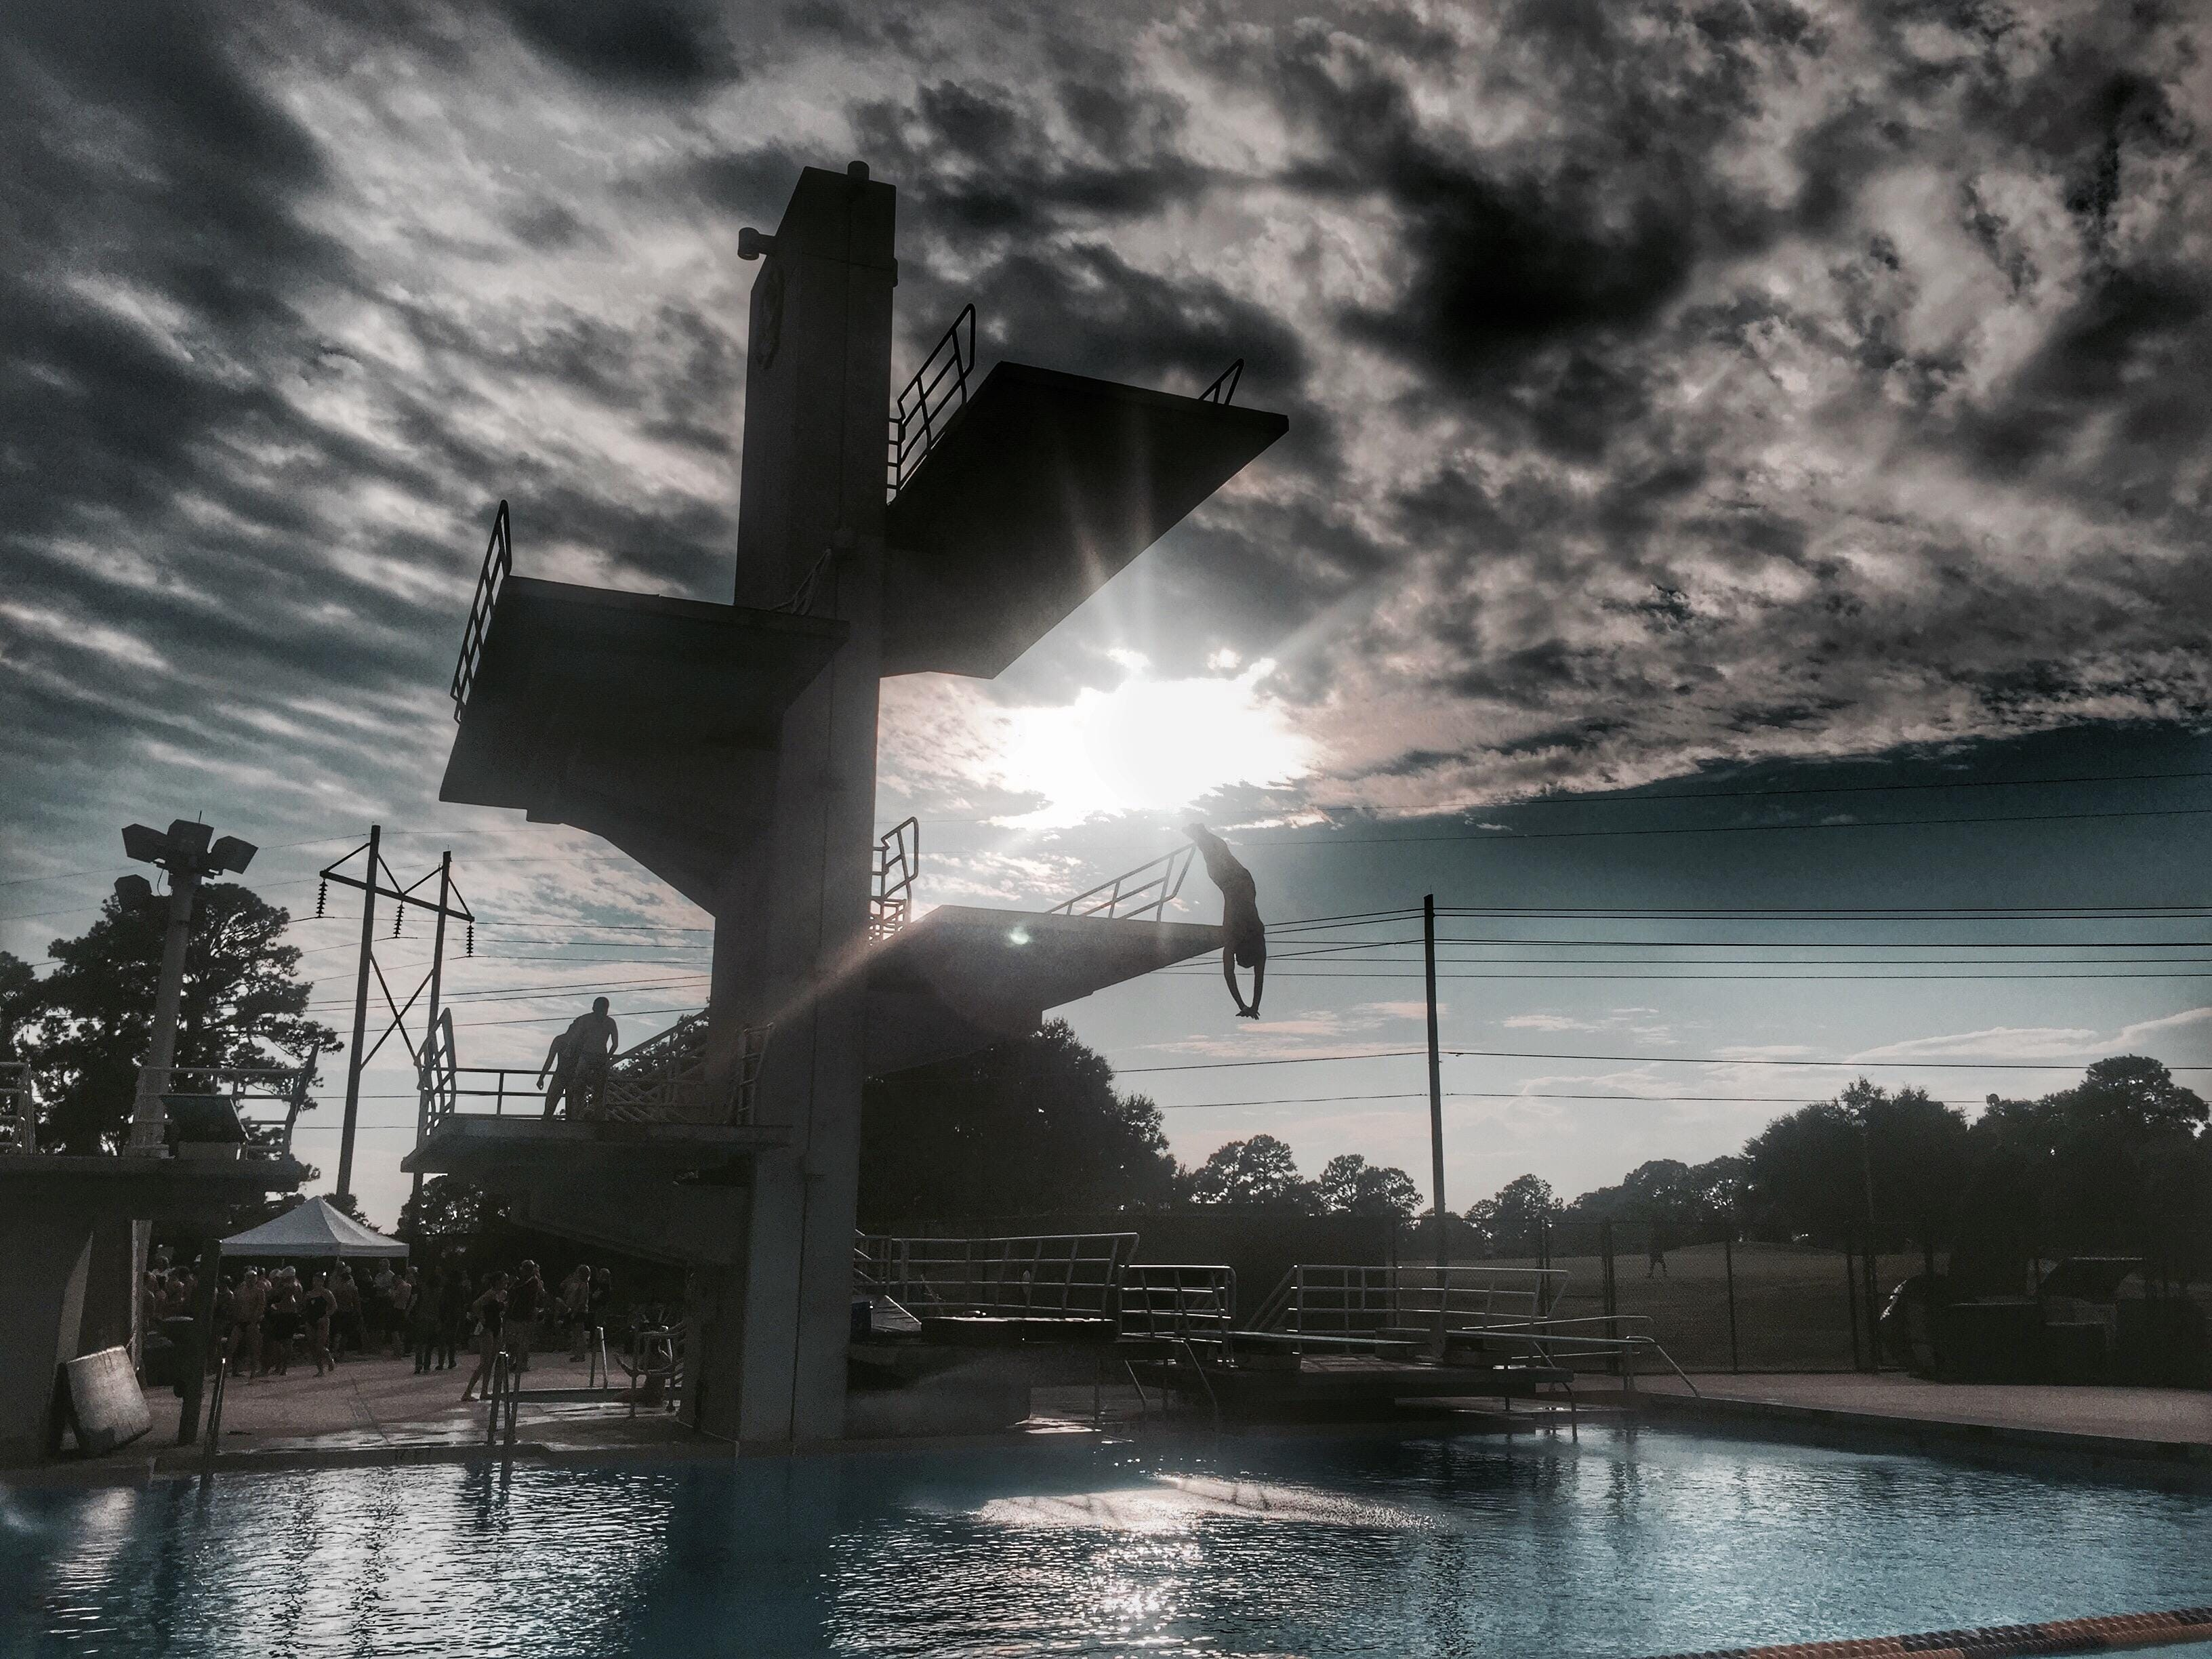 As the sun sets on FSU's Morcom Aquatic Center, Chiles junior Chase Lane falls from the 10-meter platform into the water headfirst.